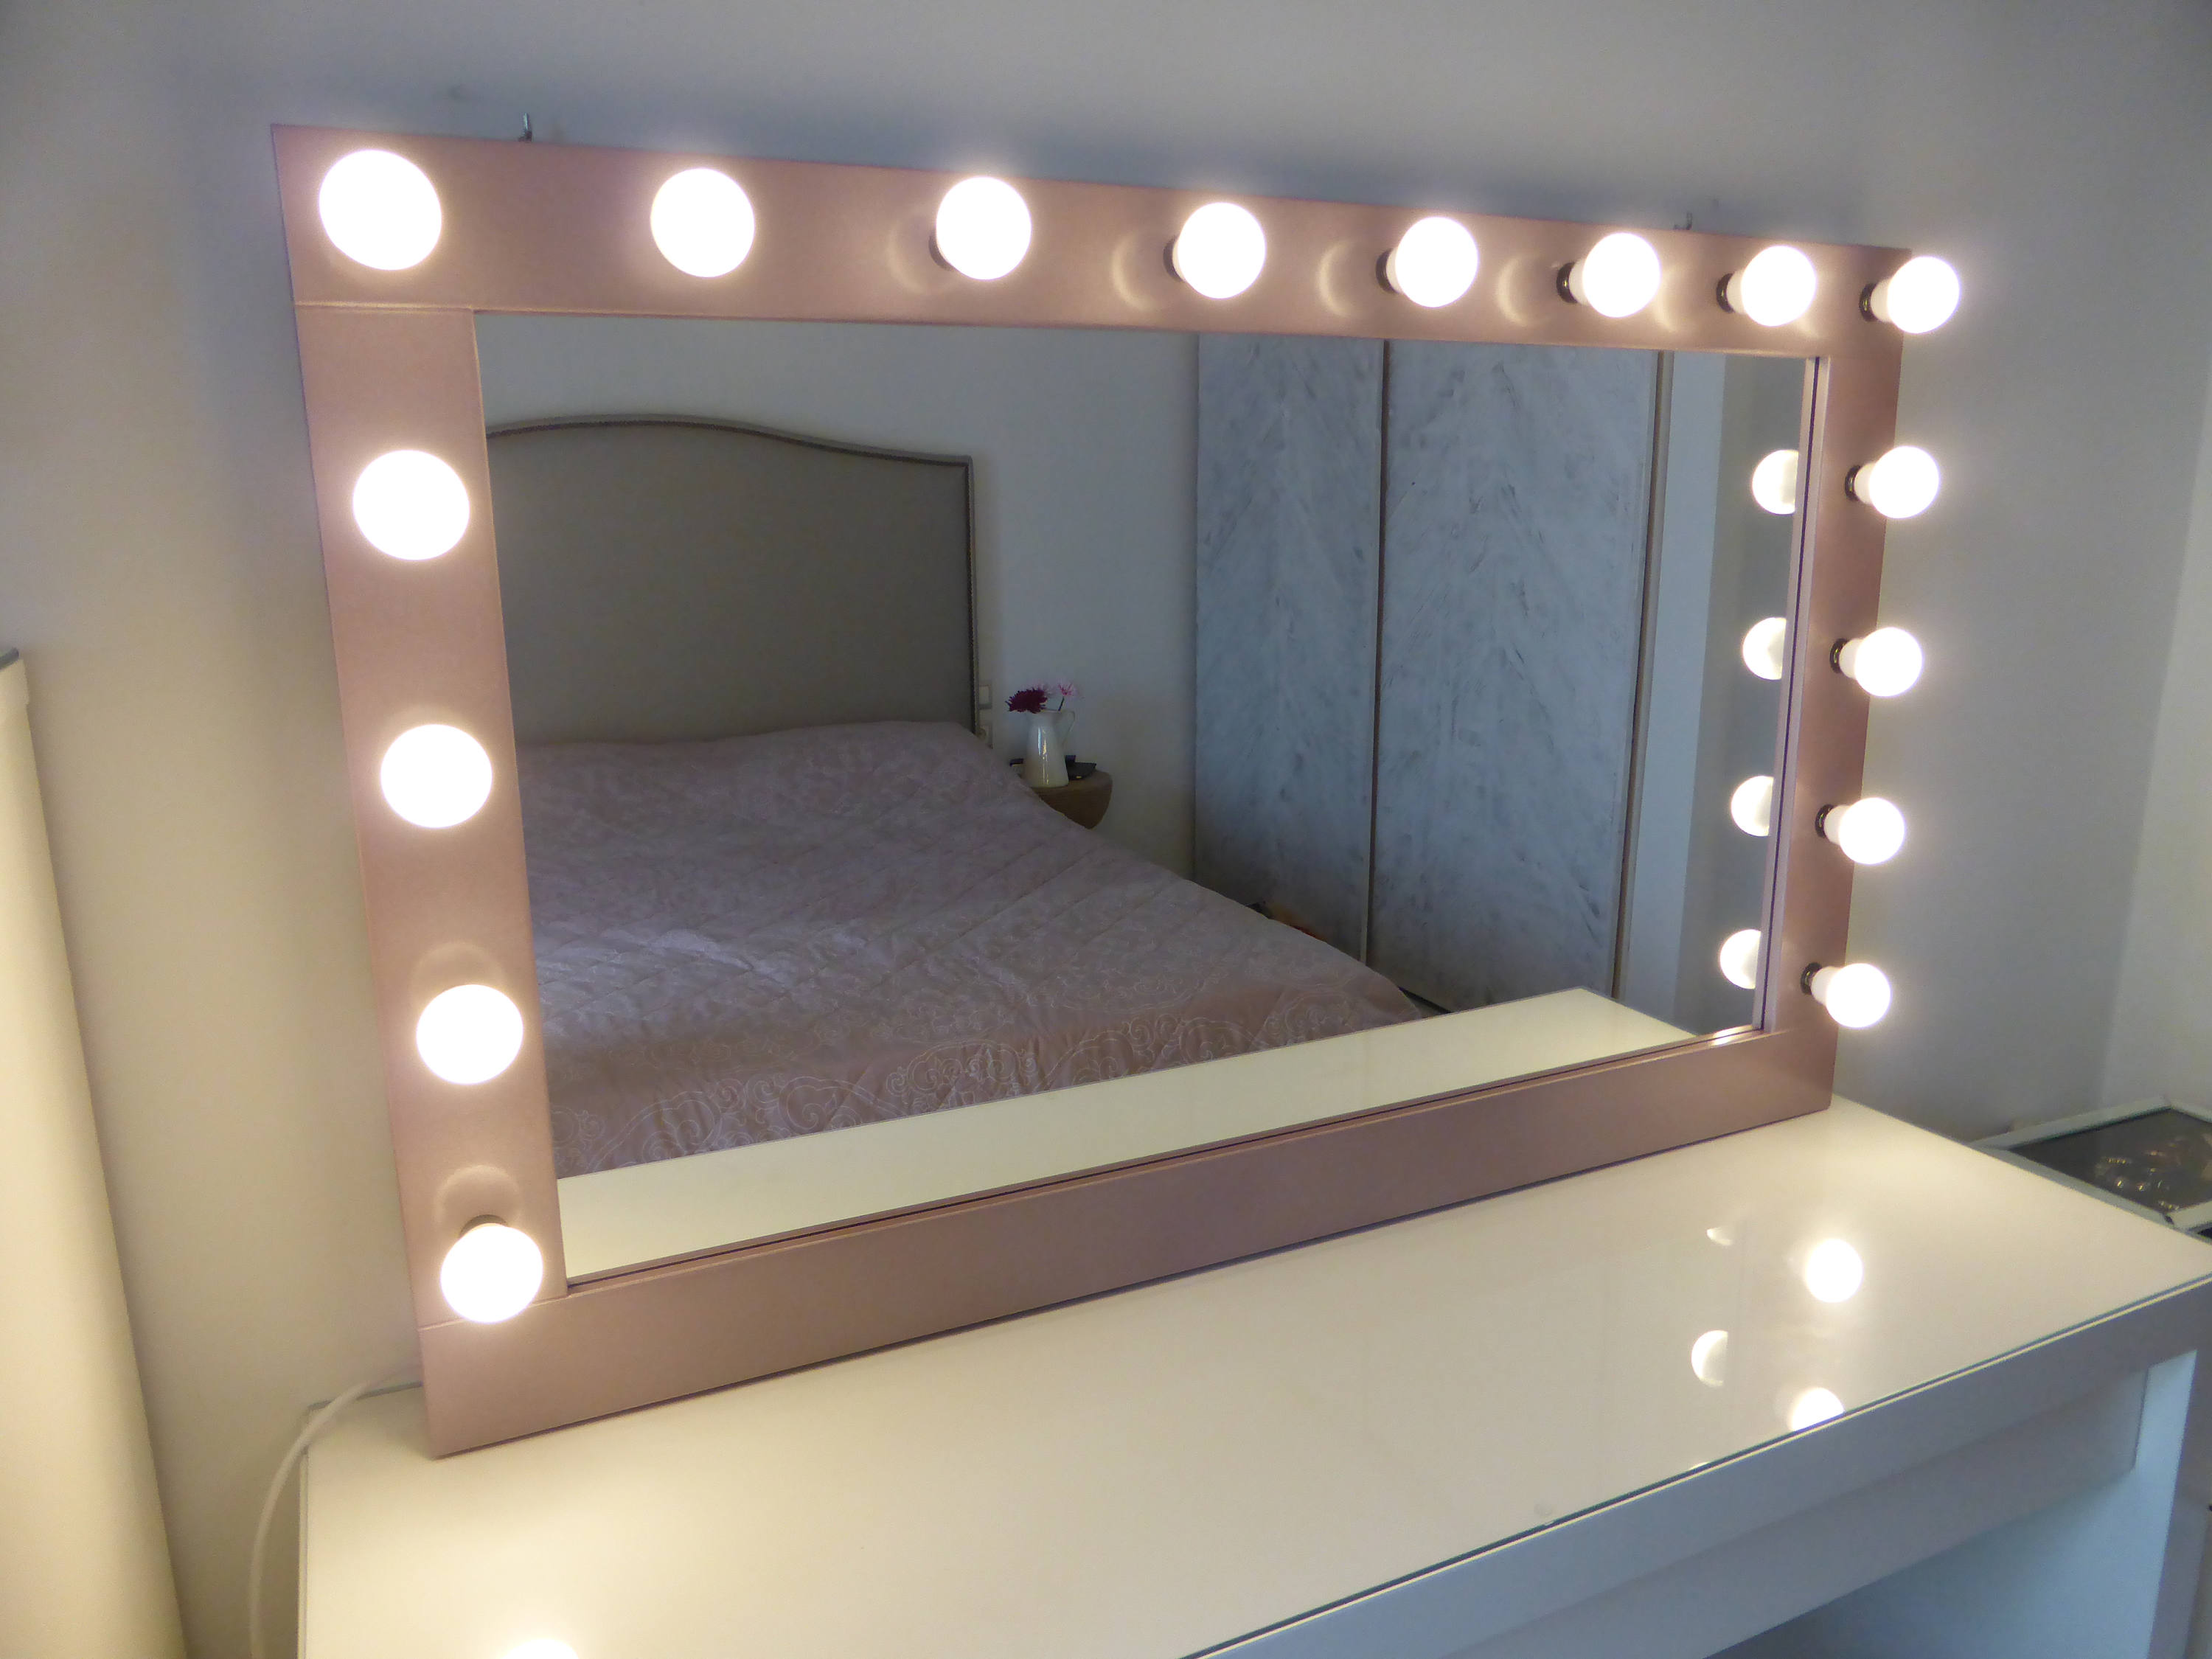 Mirror Lighted Vanity | Make Up Mirror Lights | Hollywood Vanity Mirror with Lights